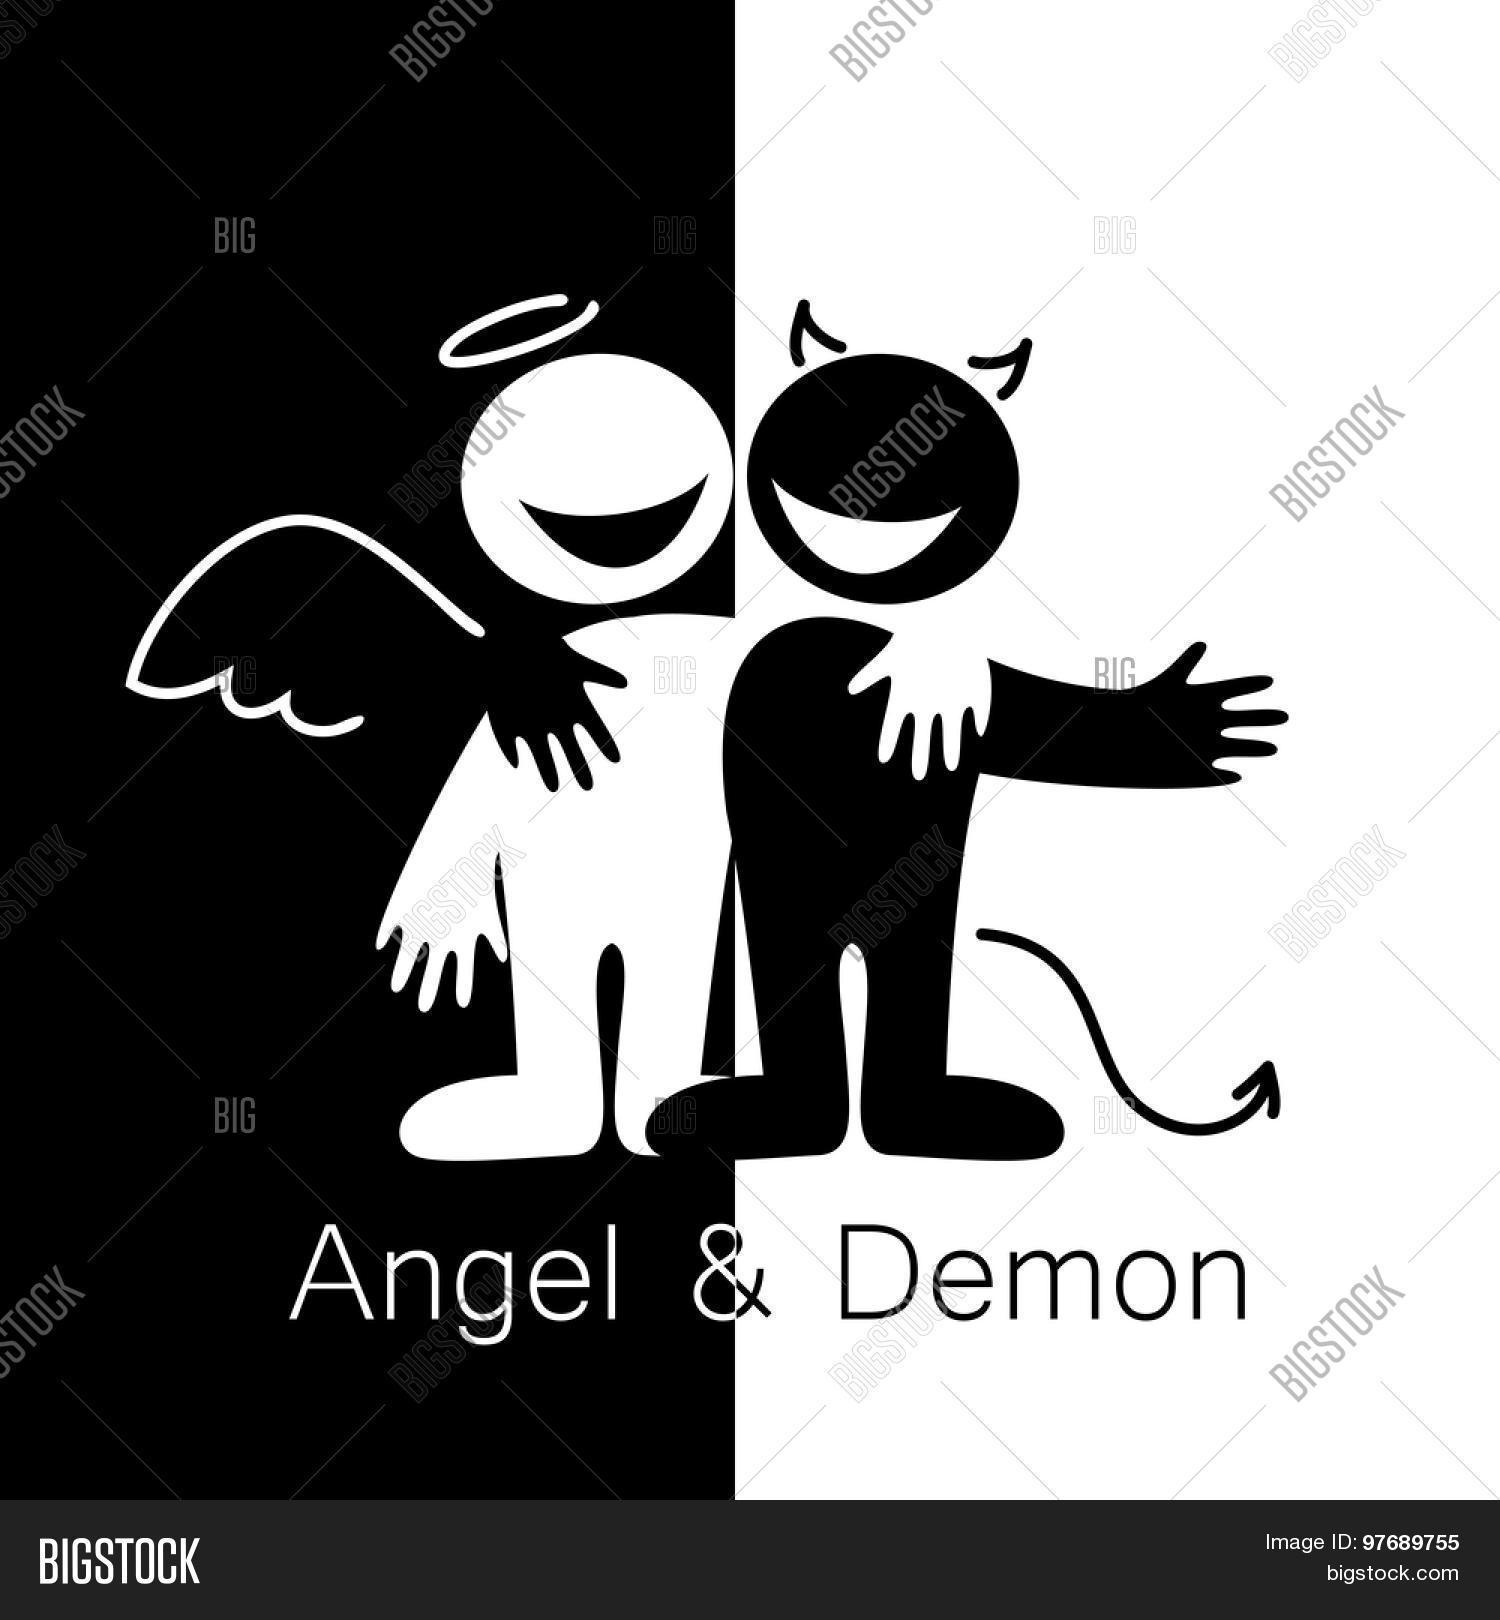 Angels demons vector photo free trial bigstock - Free evil angel pictures ...